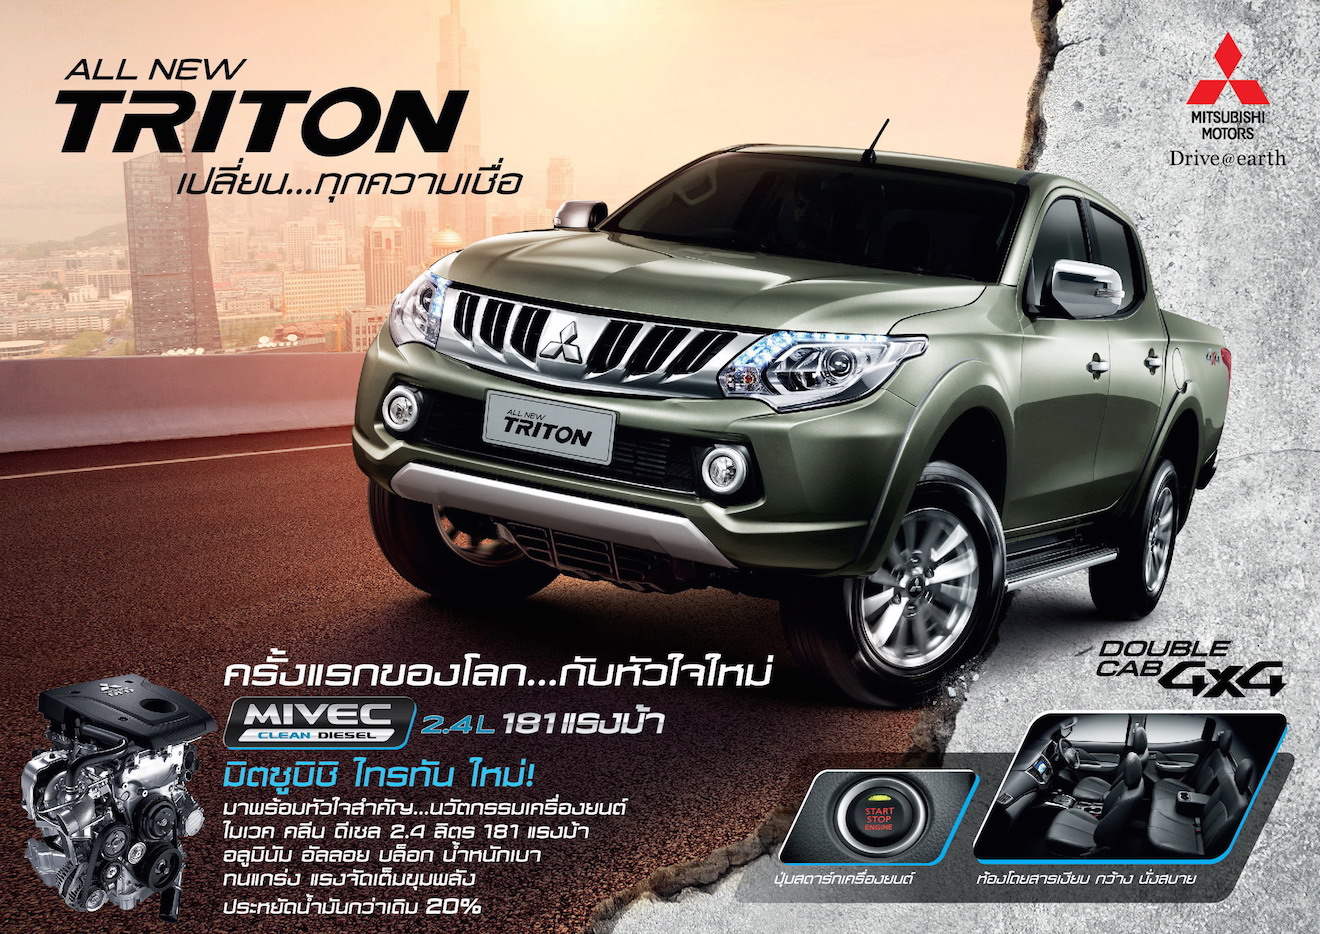 Mitsubishi Motors launches all-new Triton pick-up truck in Thailand